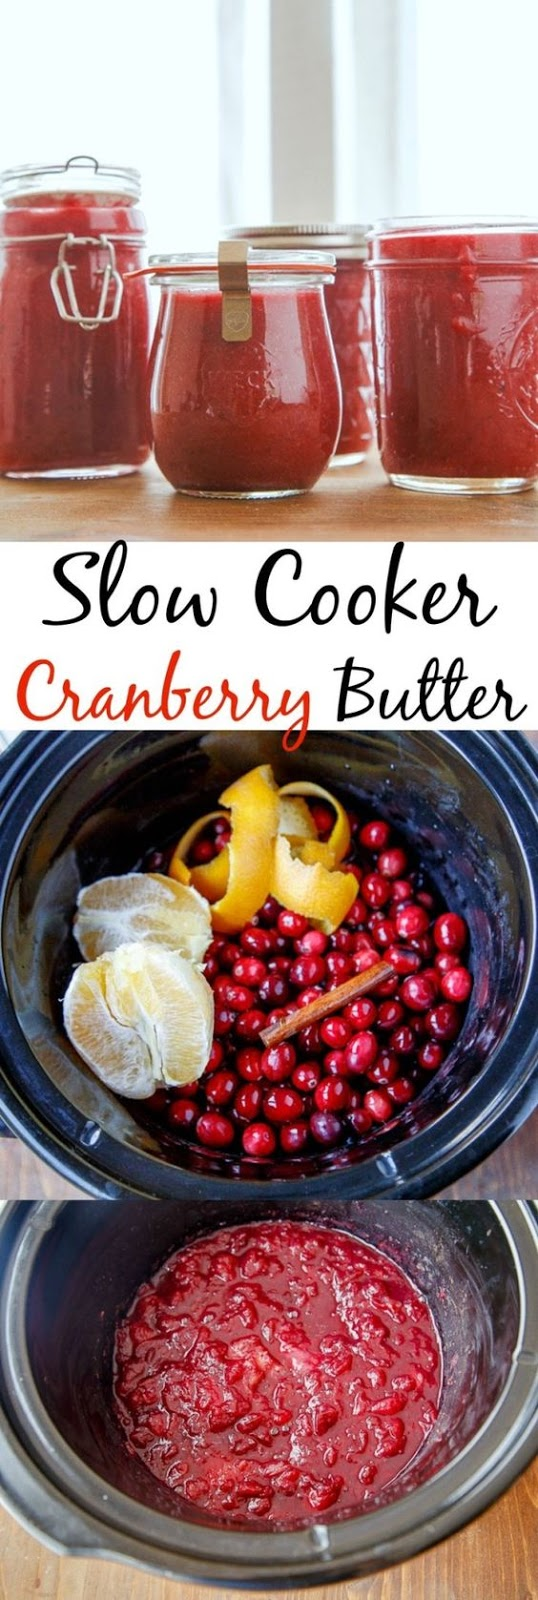 THE BEST SLOW COOKER CRANBERRY BUTTER